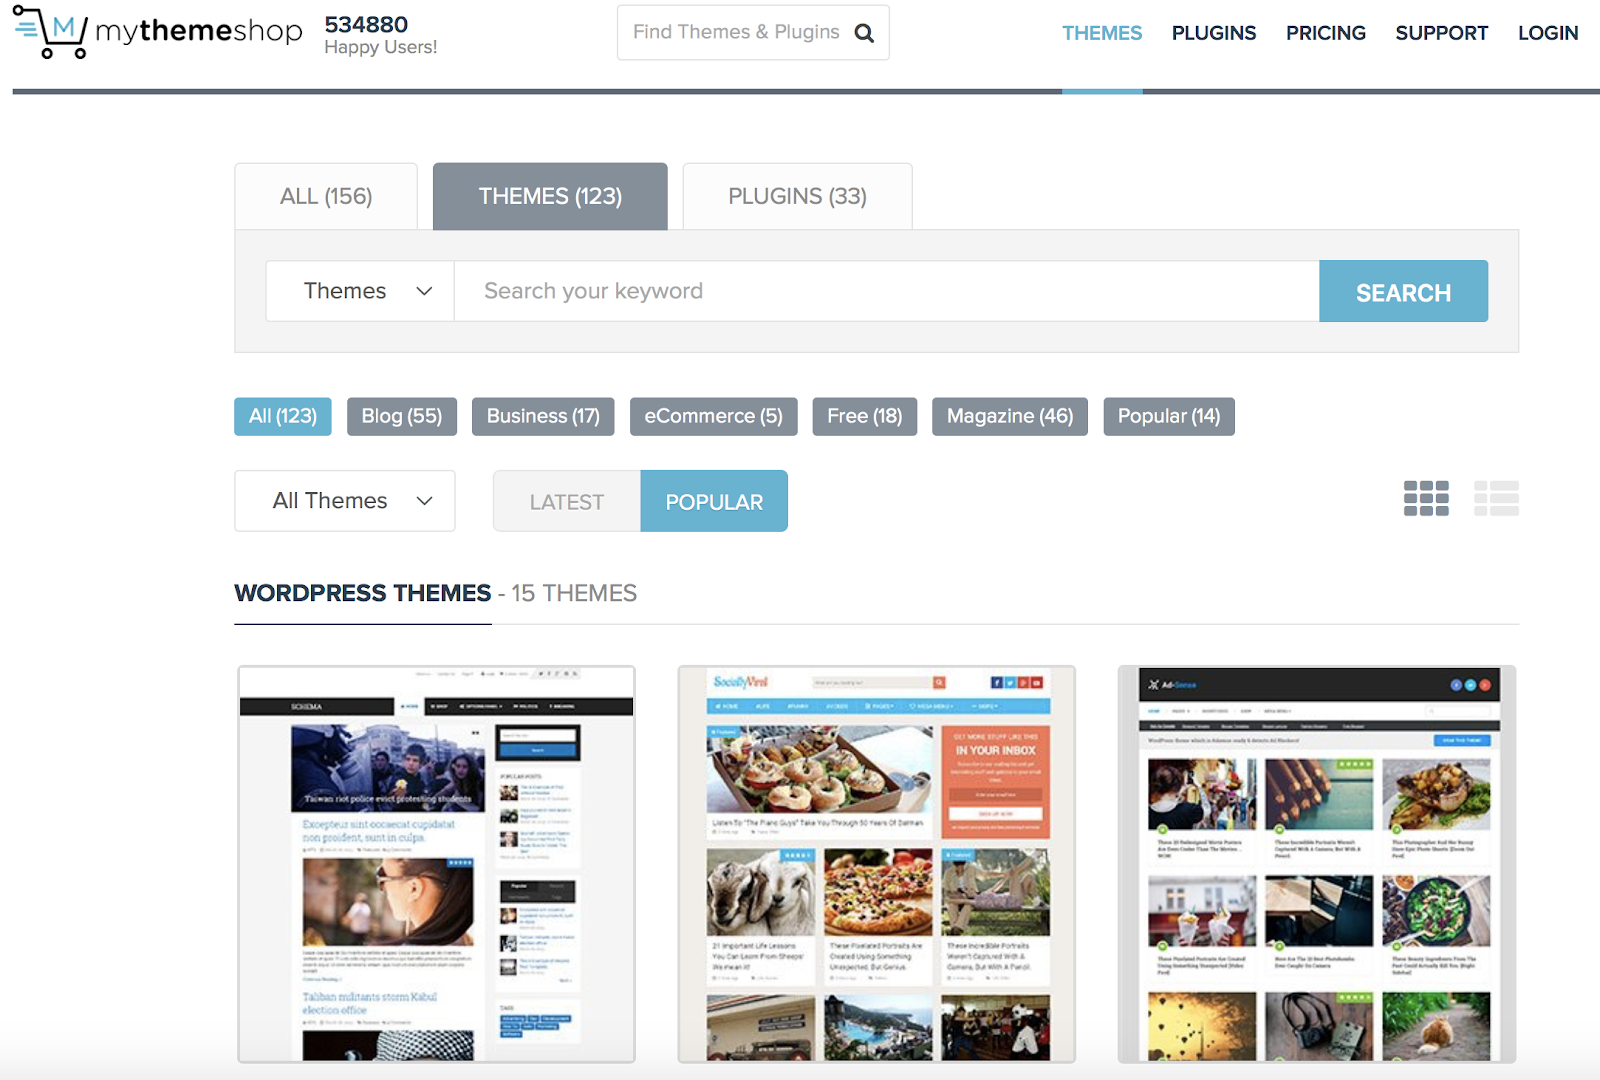 MyThemeShop has 123 WordPress themes.